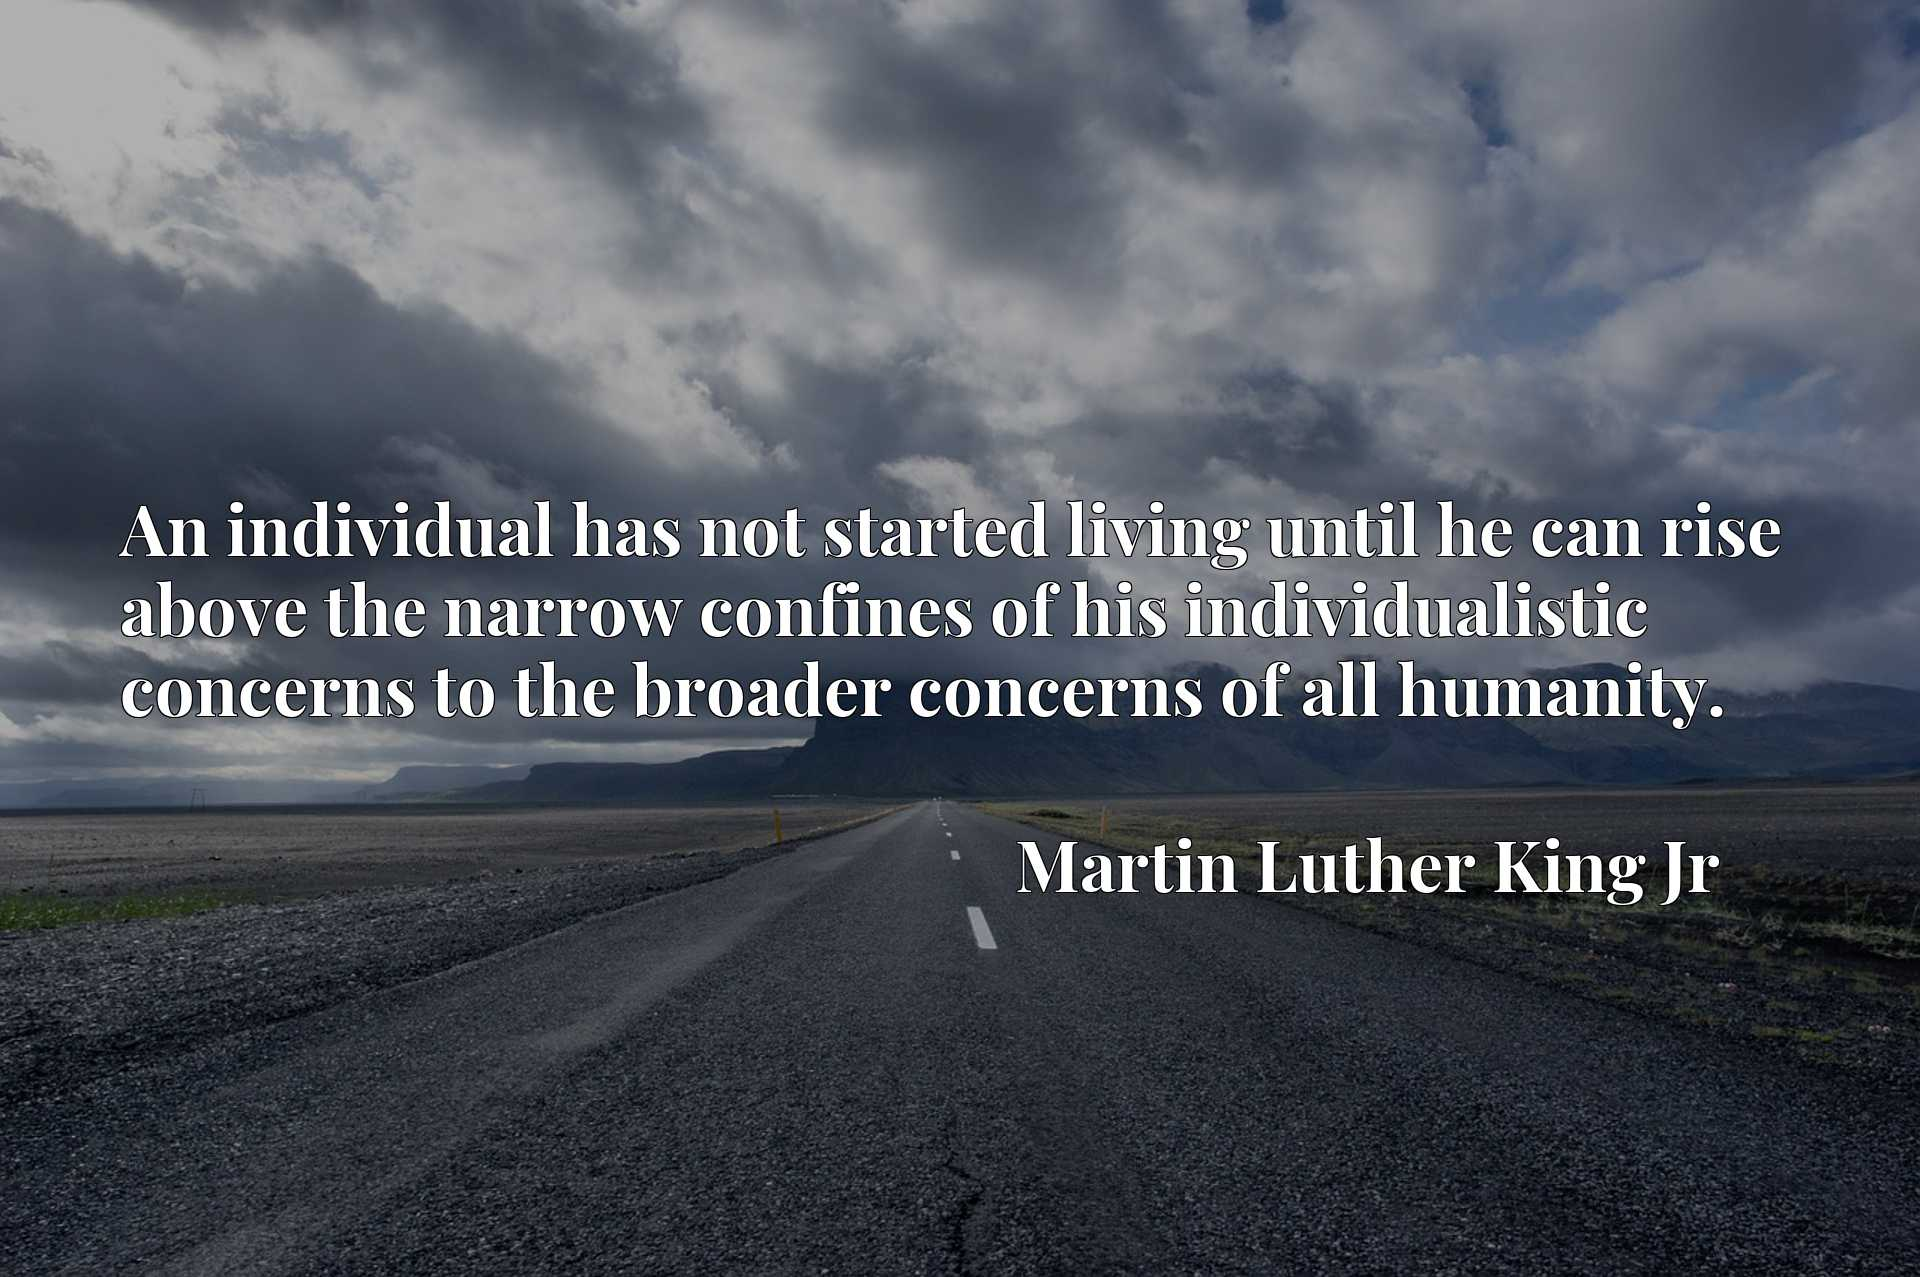 An individual has not started living until he can rise above the narrow confines of his individualistic concerns to the broader concerns of all humanity.